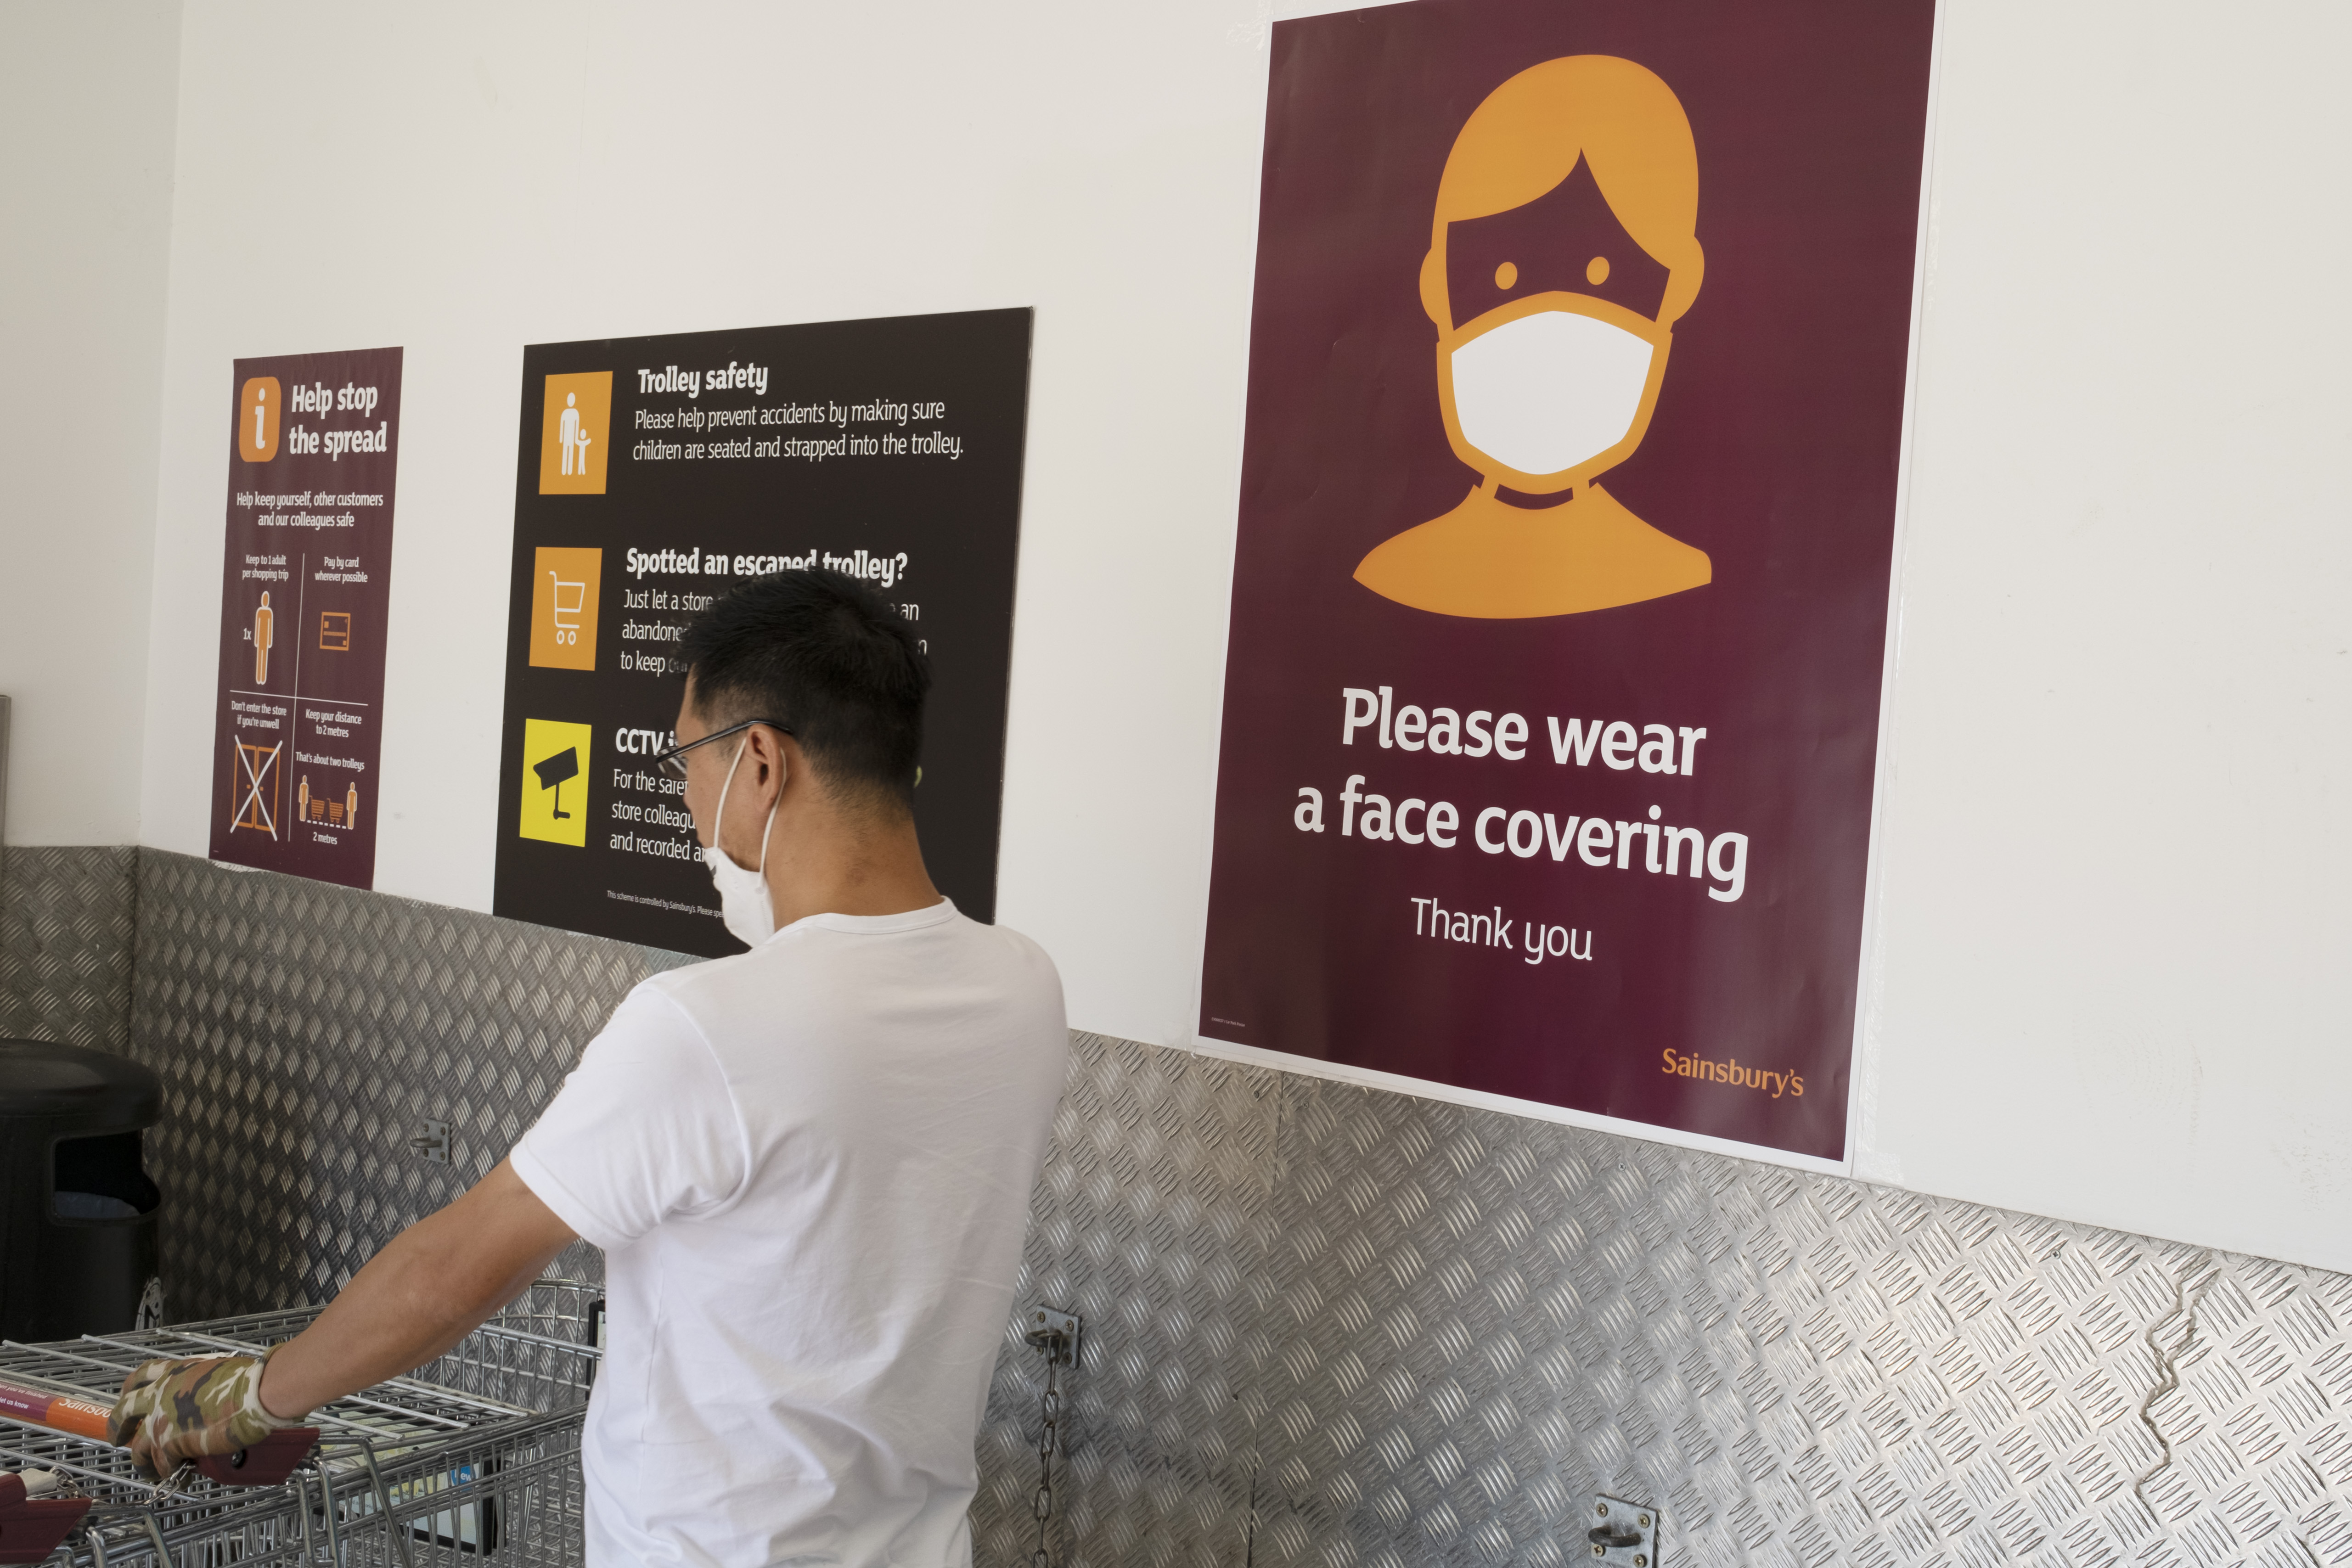 With most shops now open but with retail sales suffering due to the Coronavirus pandemic, shoppers wearing face maks at Sainsbury's supermarket, which became compulsory in shops on the 24th July, out shopping on Kings Heath High Street on 31st July 2020 in Birmingham, United Kingdom. Coronavirus or Covid-19 is a respiratory illness that has not previously been seen in humans. While much or Europe has been placed into lockdown, the UK government has put in place more stringent rules as part of their long term strategy, and in particular social distancing. (photo by Mike Kemp/In PIctures via Getty Images)